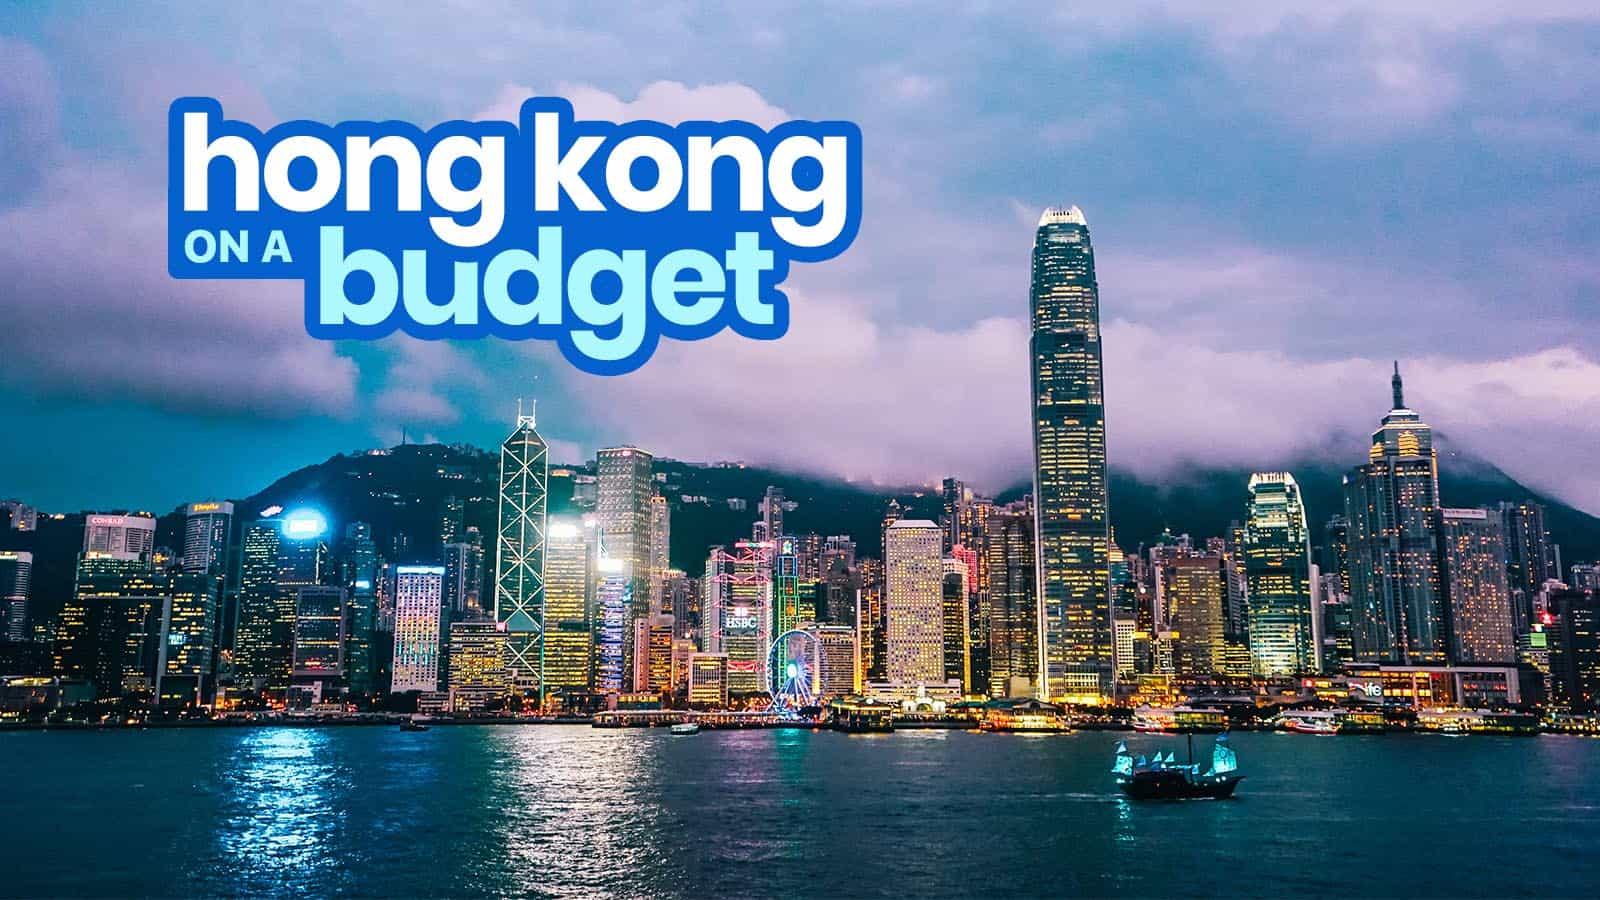 HONG KONG TRAVEL GUIDE with Budget Itinerary